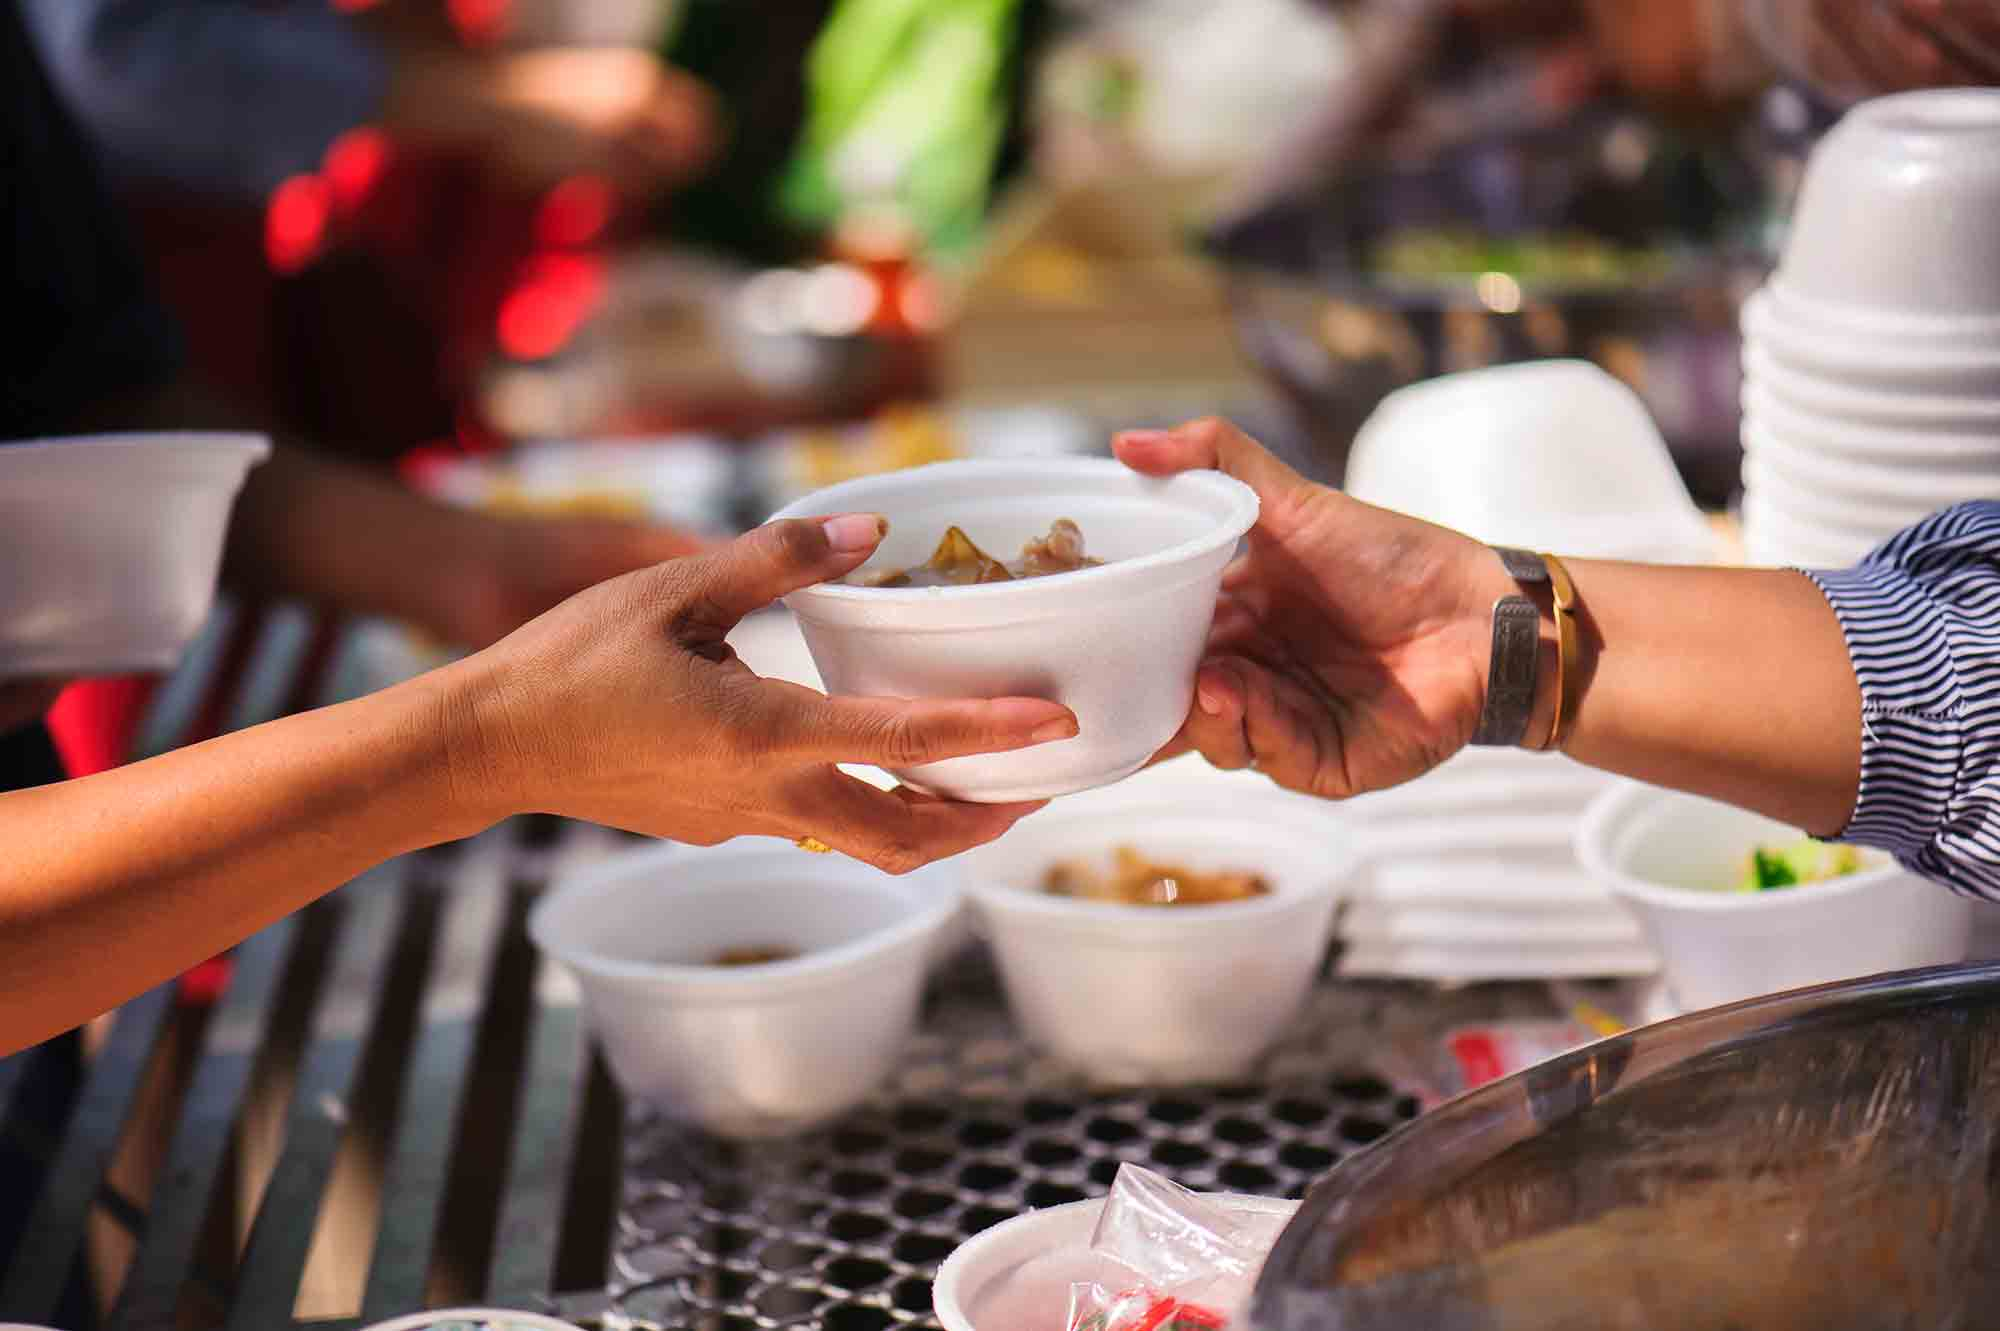 Distribute free food to the poor - two hands exchanging a bowl of food - basic human rights